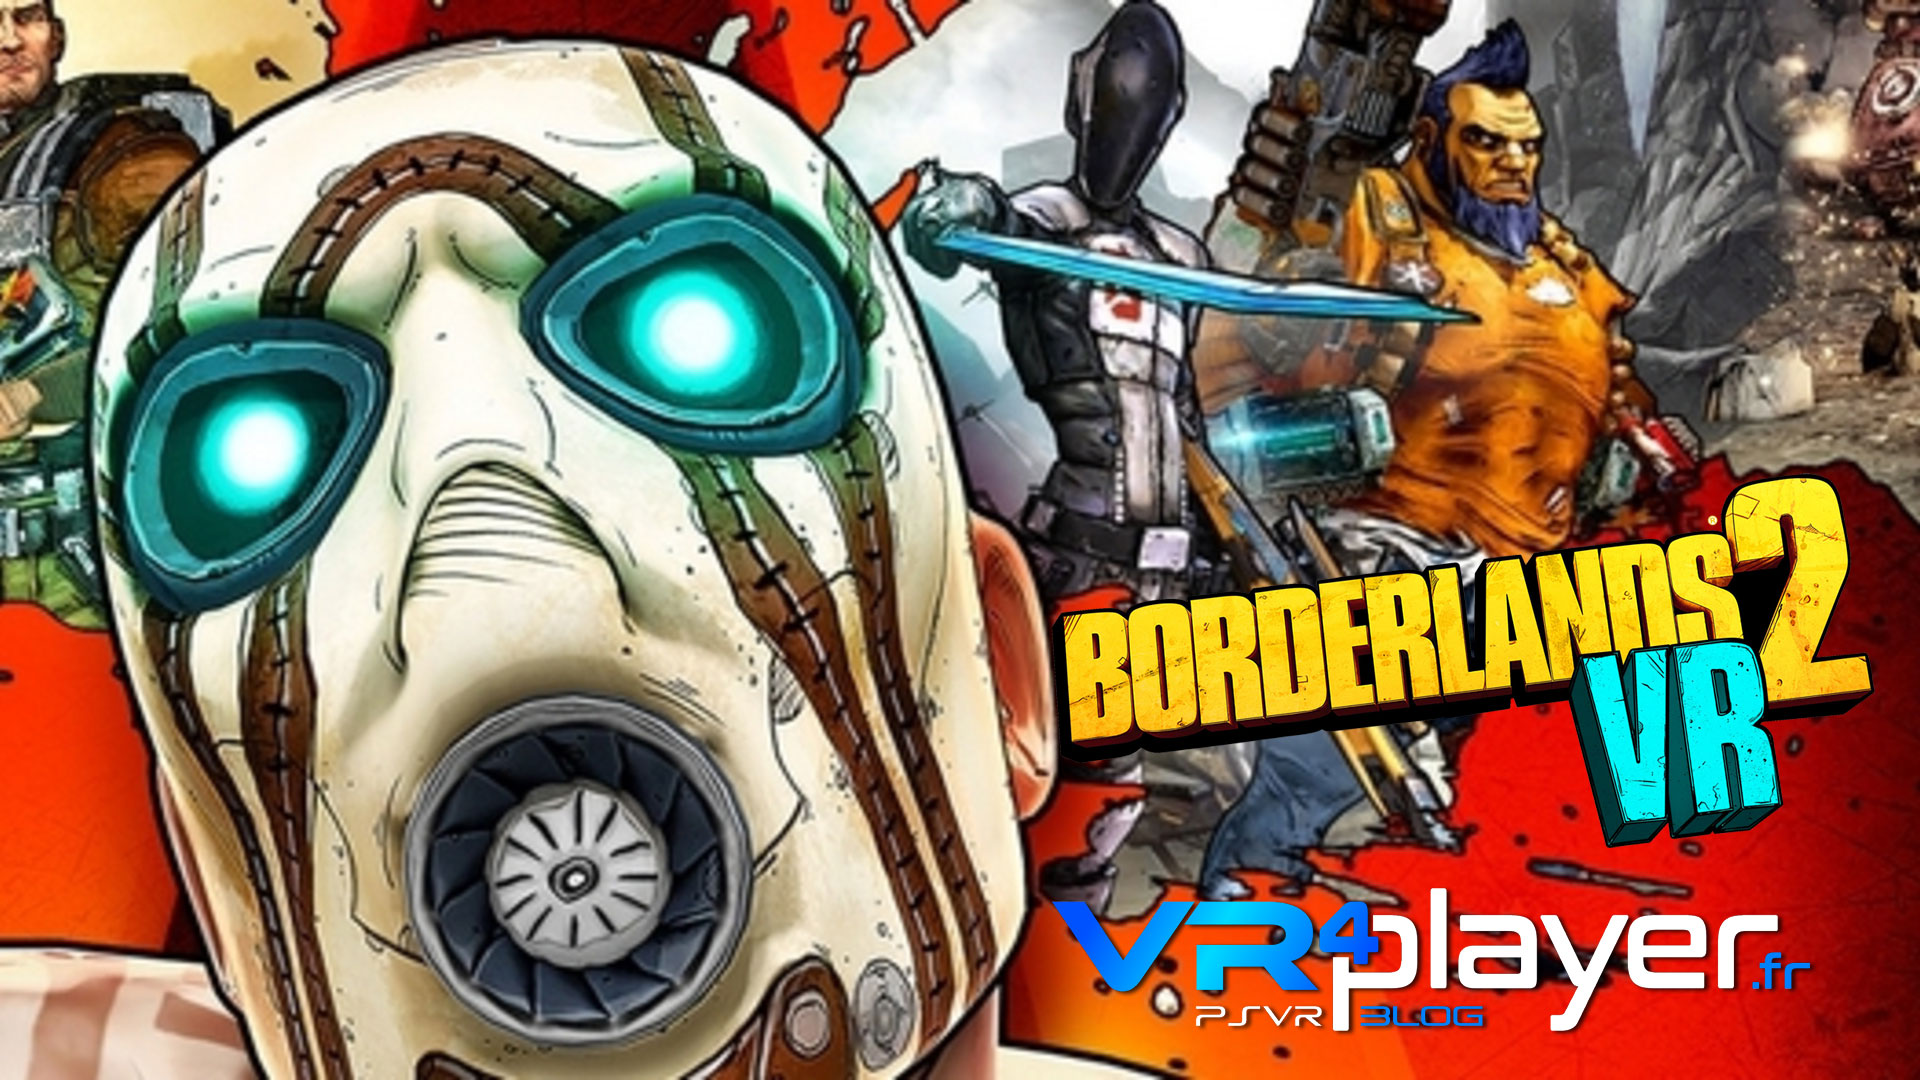 Borderlands 2 VR sans DLC sur PSVR - vr4player.fr